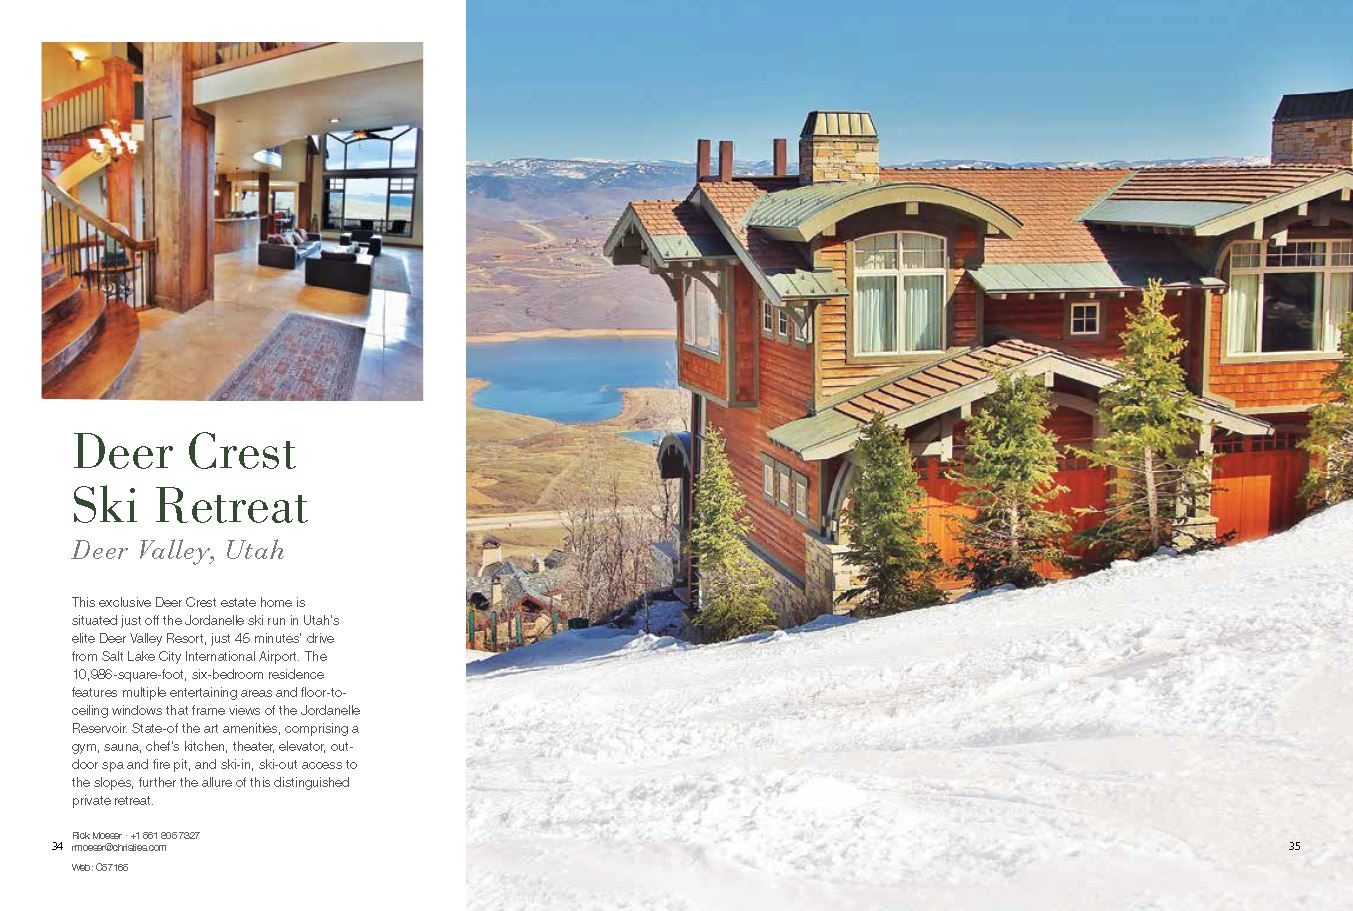 Deer Crest Mountain Retreat